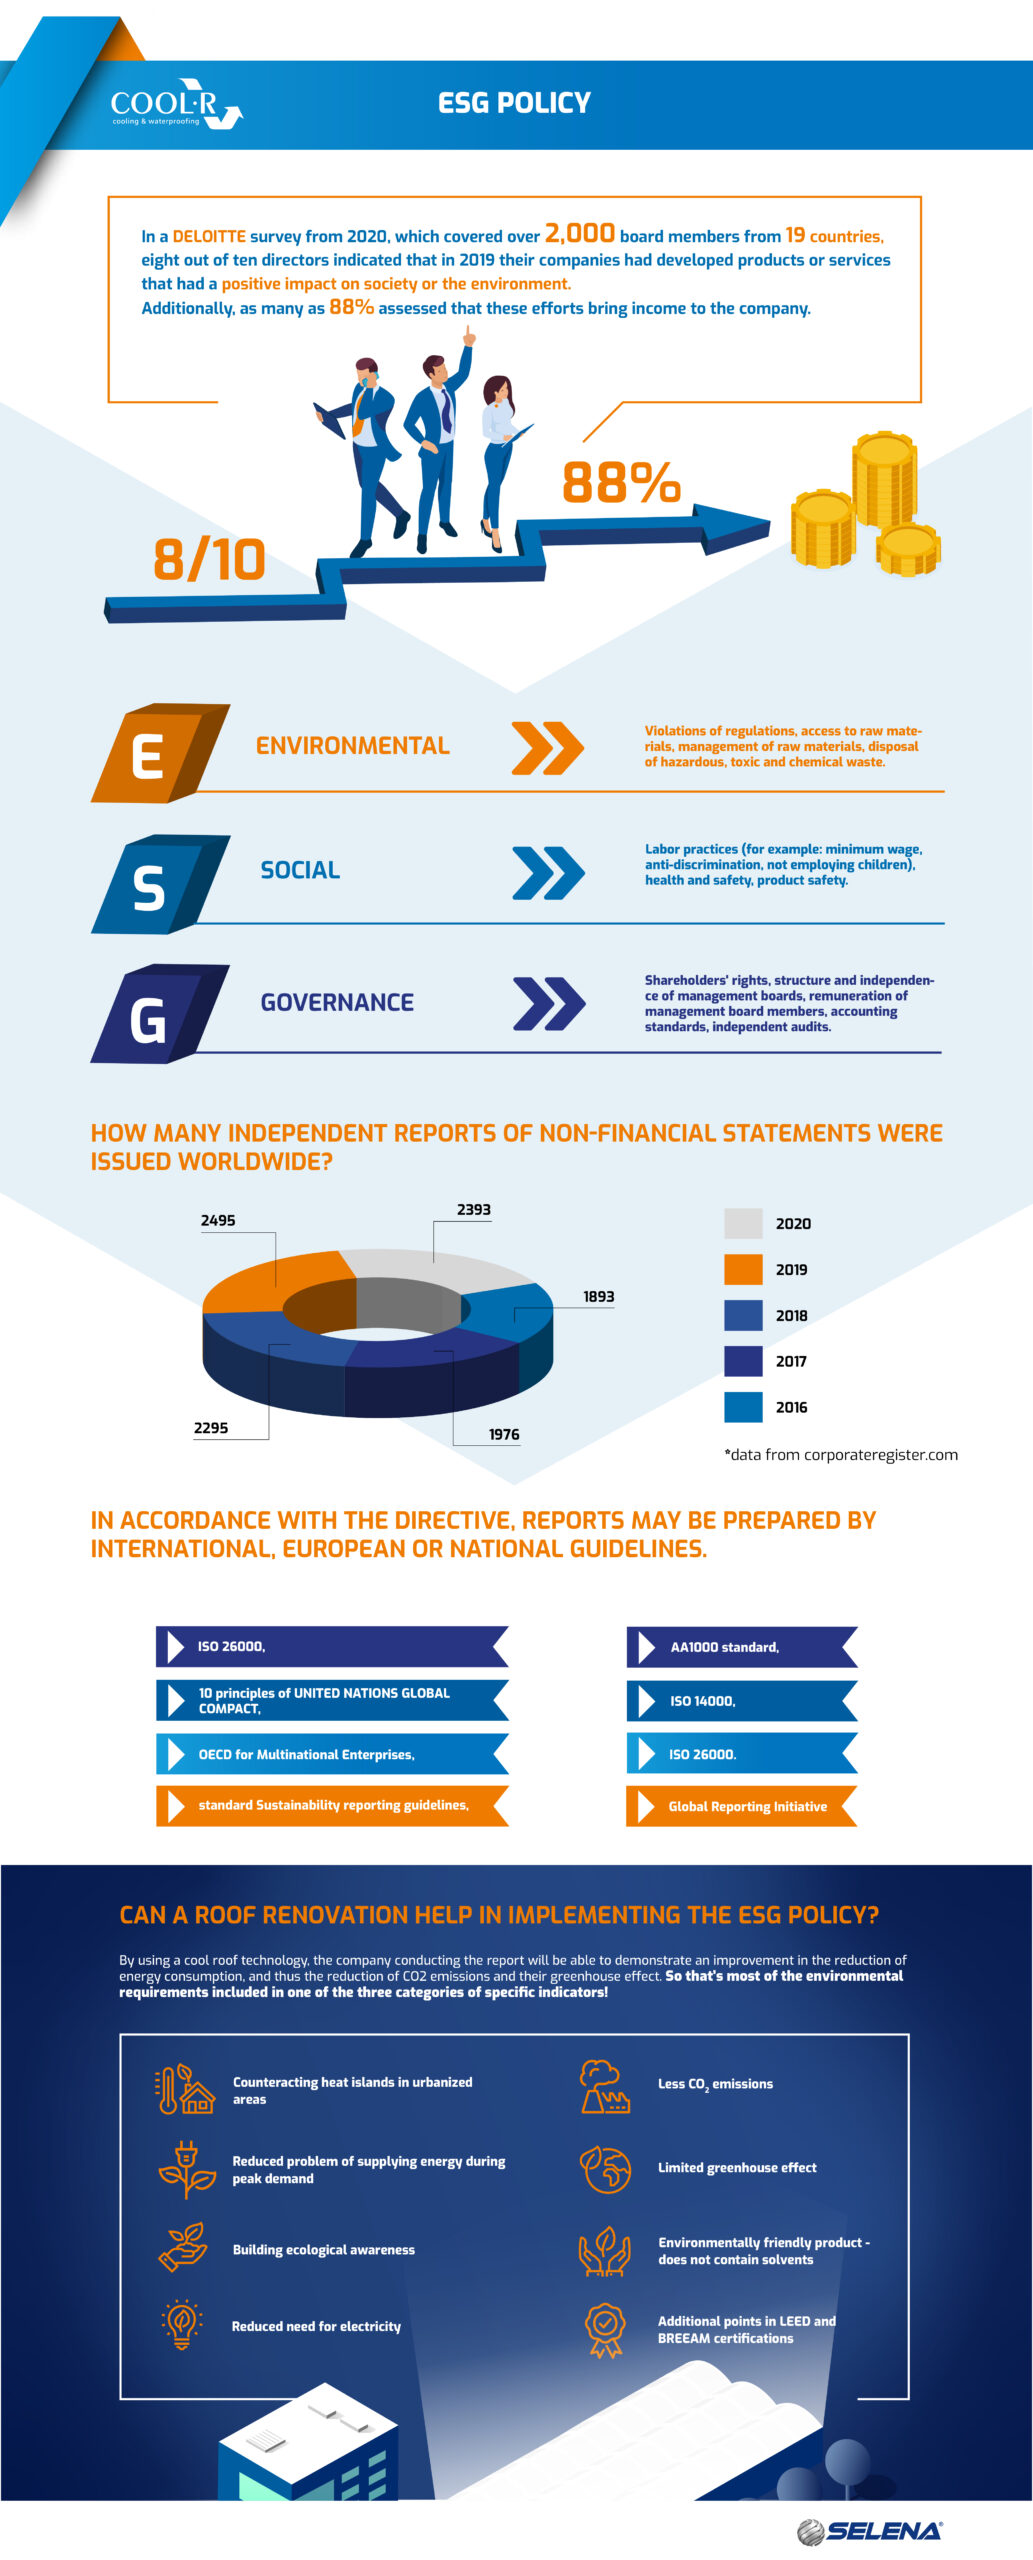 COOL R ESG Policy infographic article 2 26052021 scaled